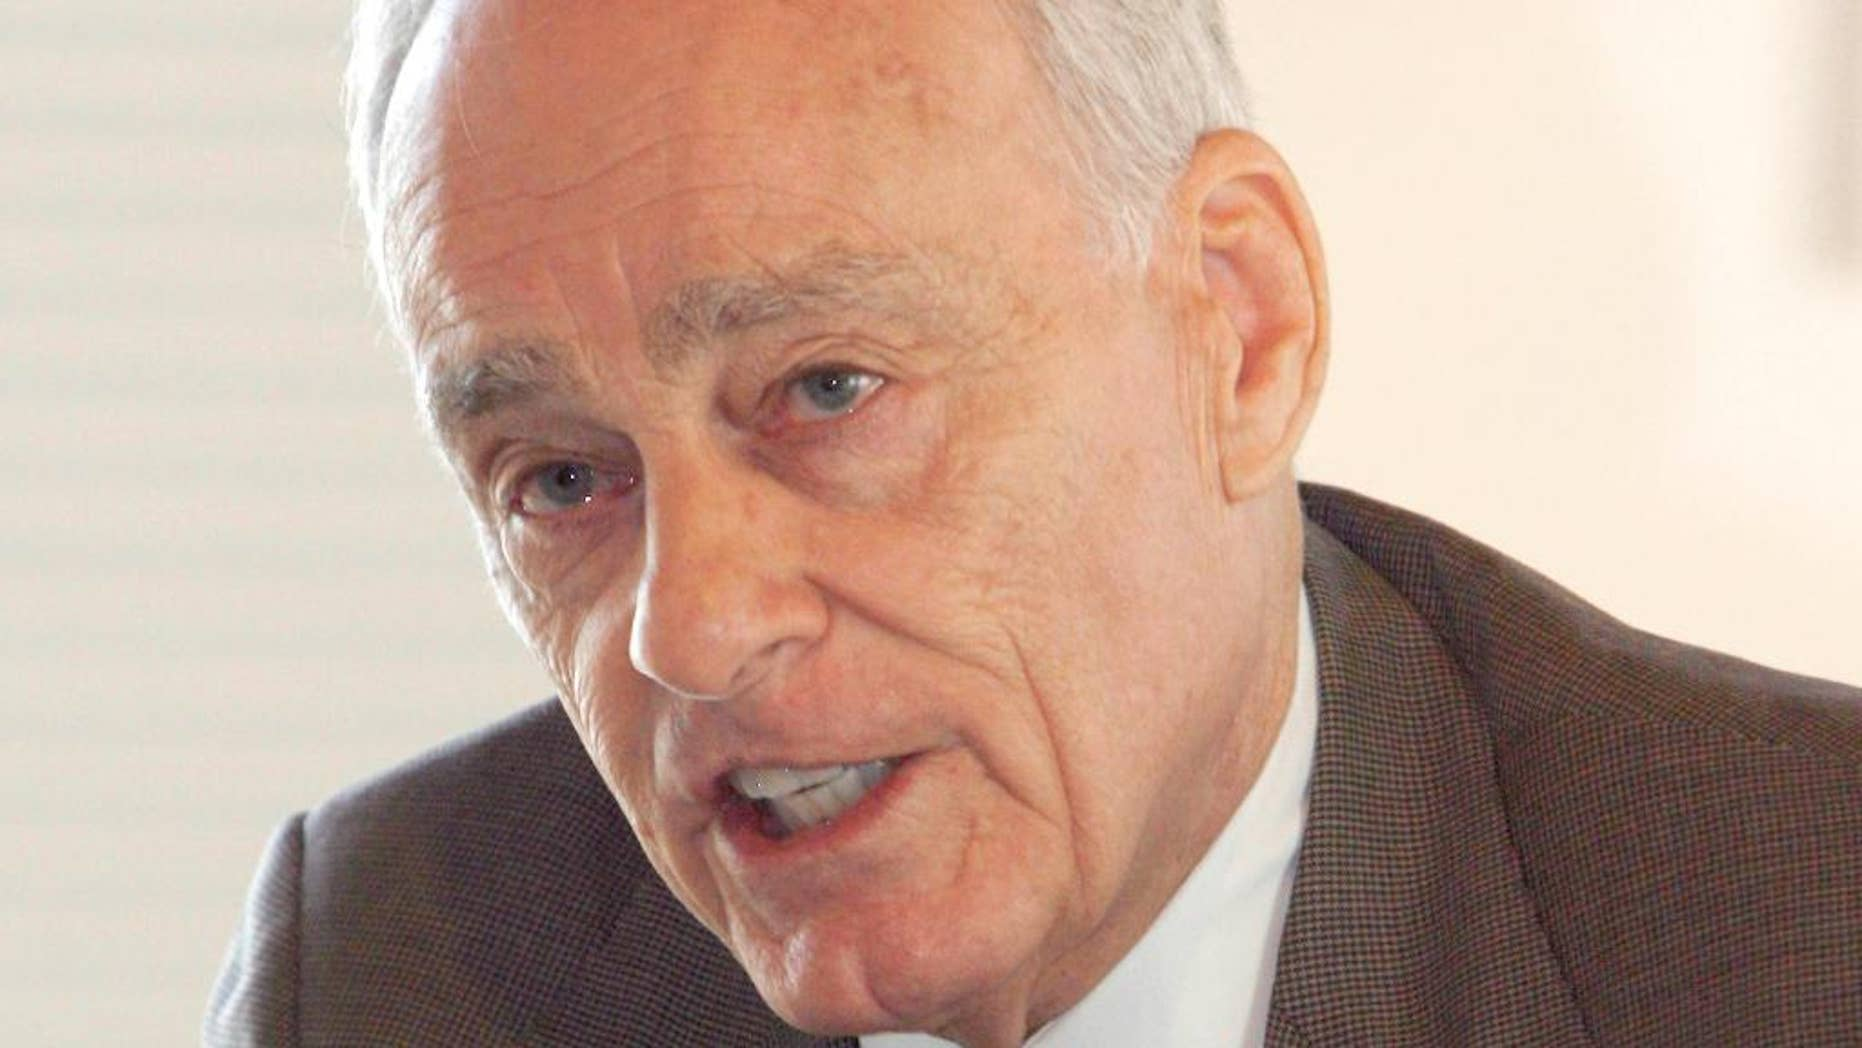 """File-This Sept. 18, 2008, file photo shows Vincent Bugliosi speaking at a news conference in Burlington, Vt. The prosecutor in the Charles Manson trial who went on to write the best-selling true-crime book, """"Helter Skelter,"""" has died. Bugliosi was 80 years old. His son Vincent Bugliosi Jr. tells the Associated Press Monday, June 8, 2015, that Bugliosi died of cancer Saturday at a hospital in Los Angeles. (AP Photo/Toby Talbot, File)"""